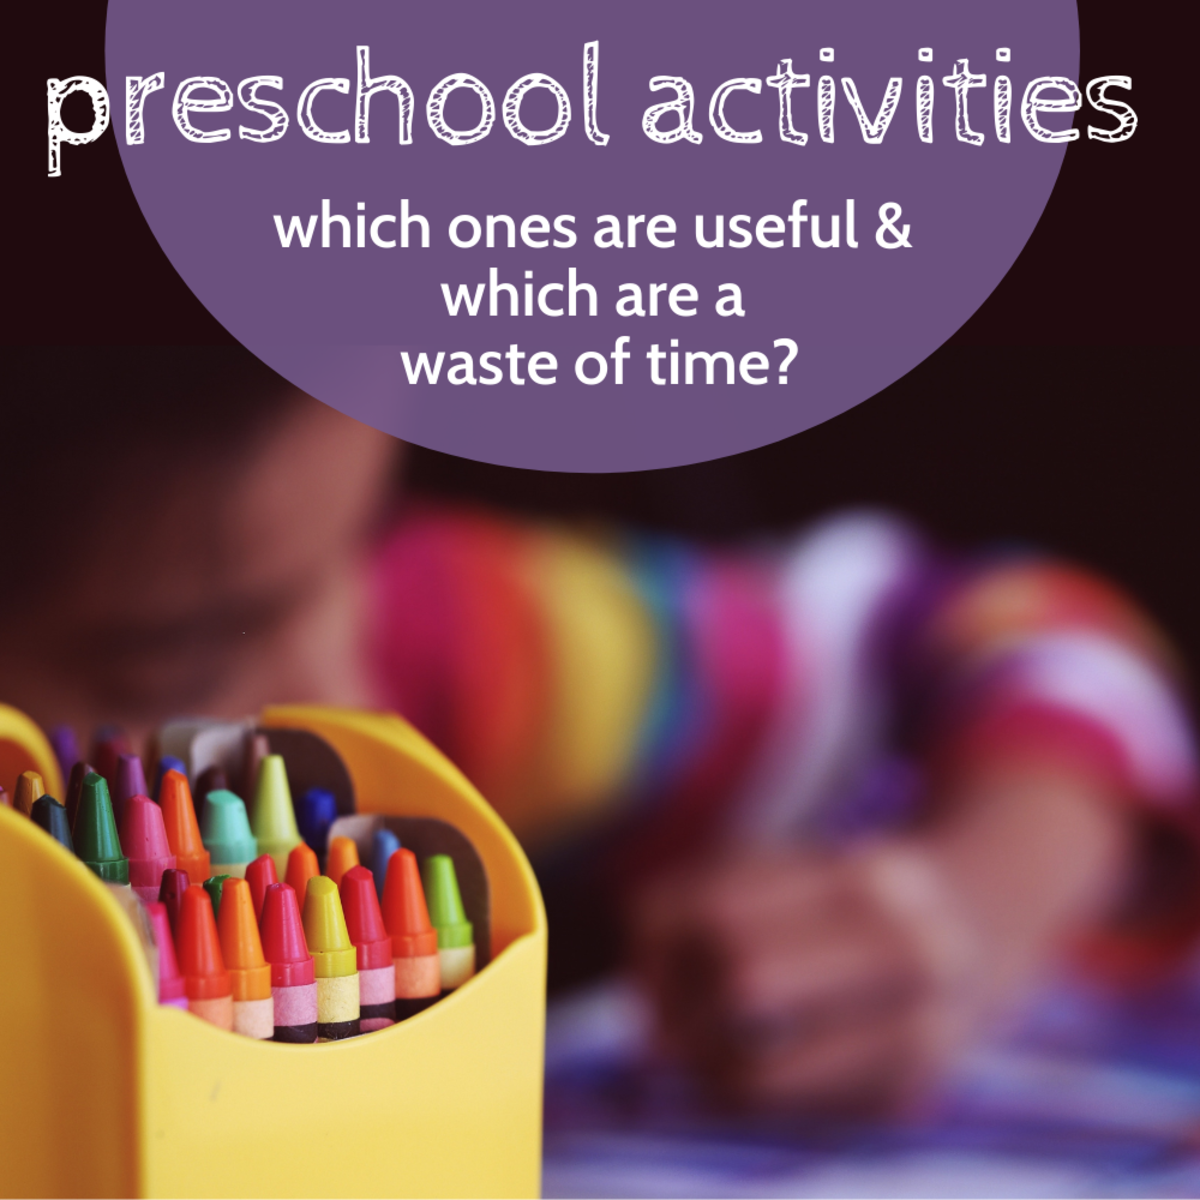 Some common preschool activities are a waste of time and developmentally inappropriate.